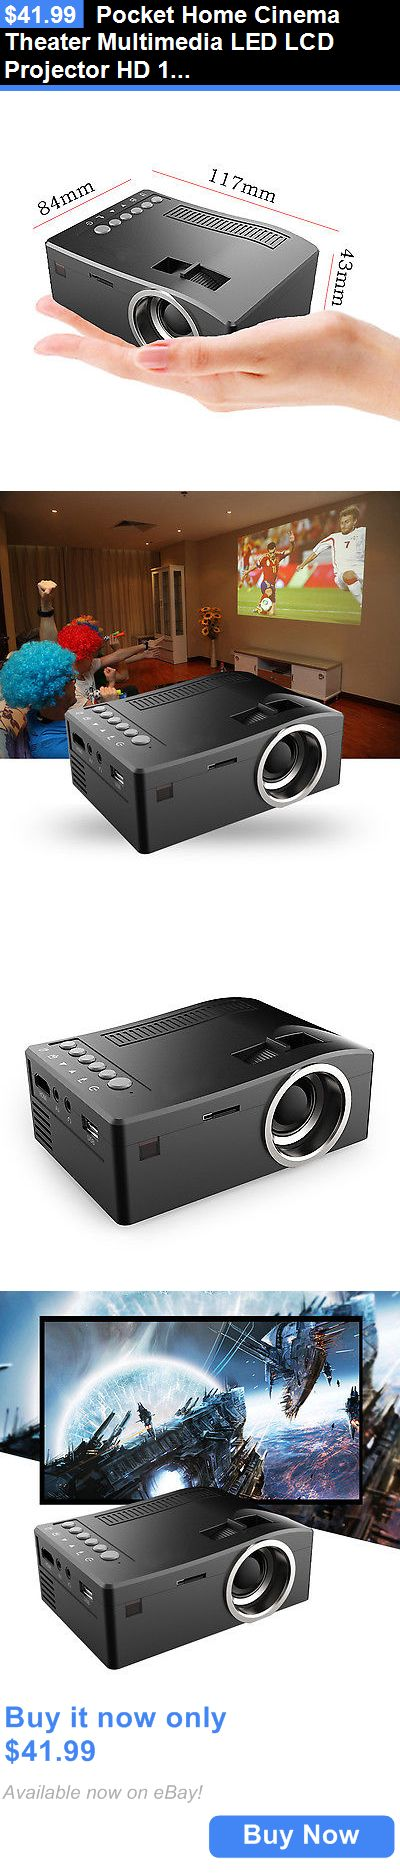 Home Audio: Pocket Home Cinema Theater Multimedia Led Lcd Projector Hd 1080P Pc Av Usb Hdmi BUY IT NOW ONLY: $41.99